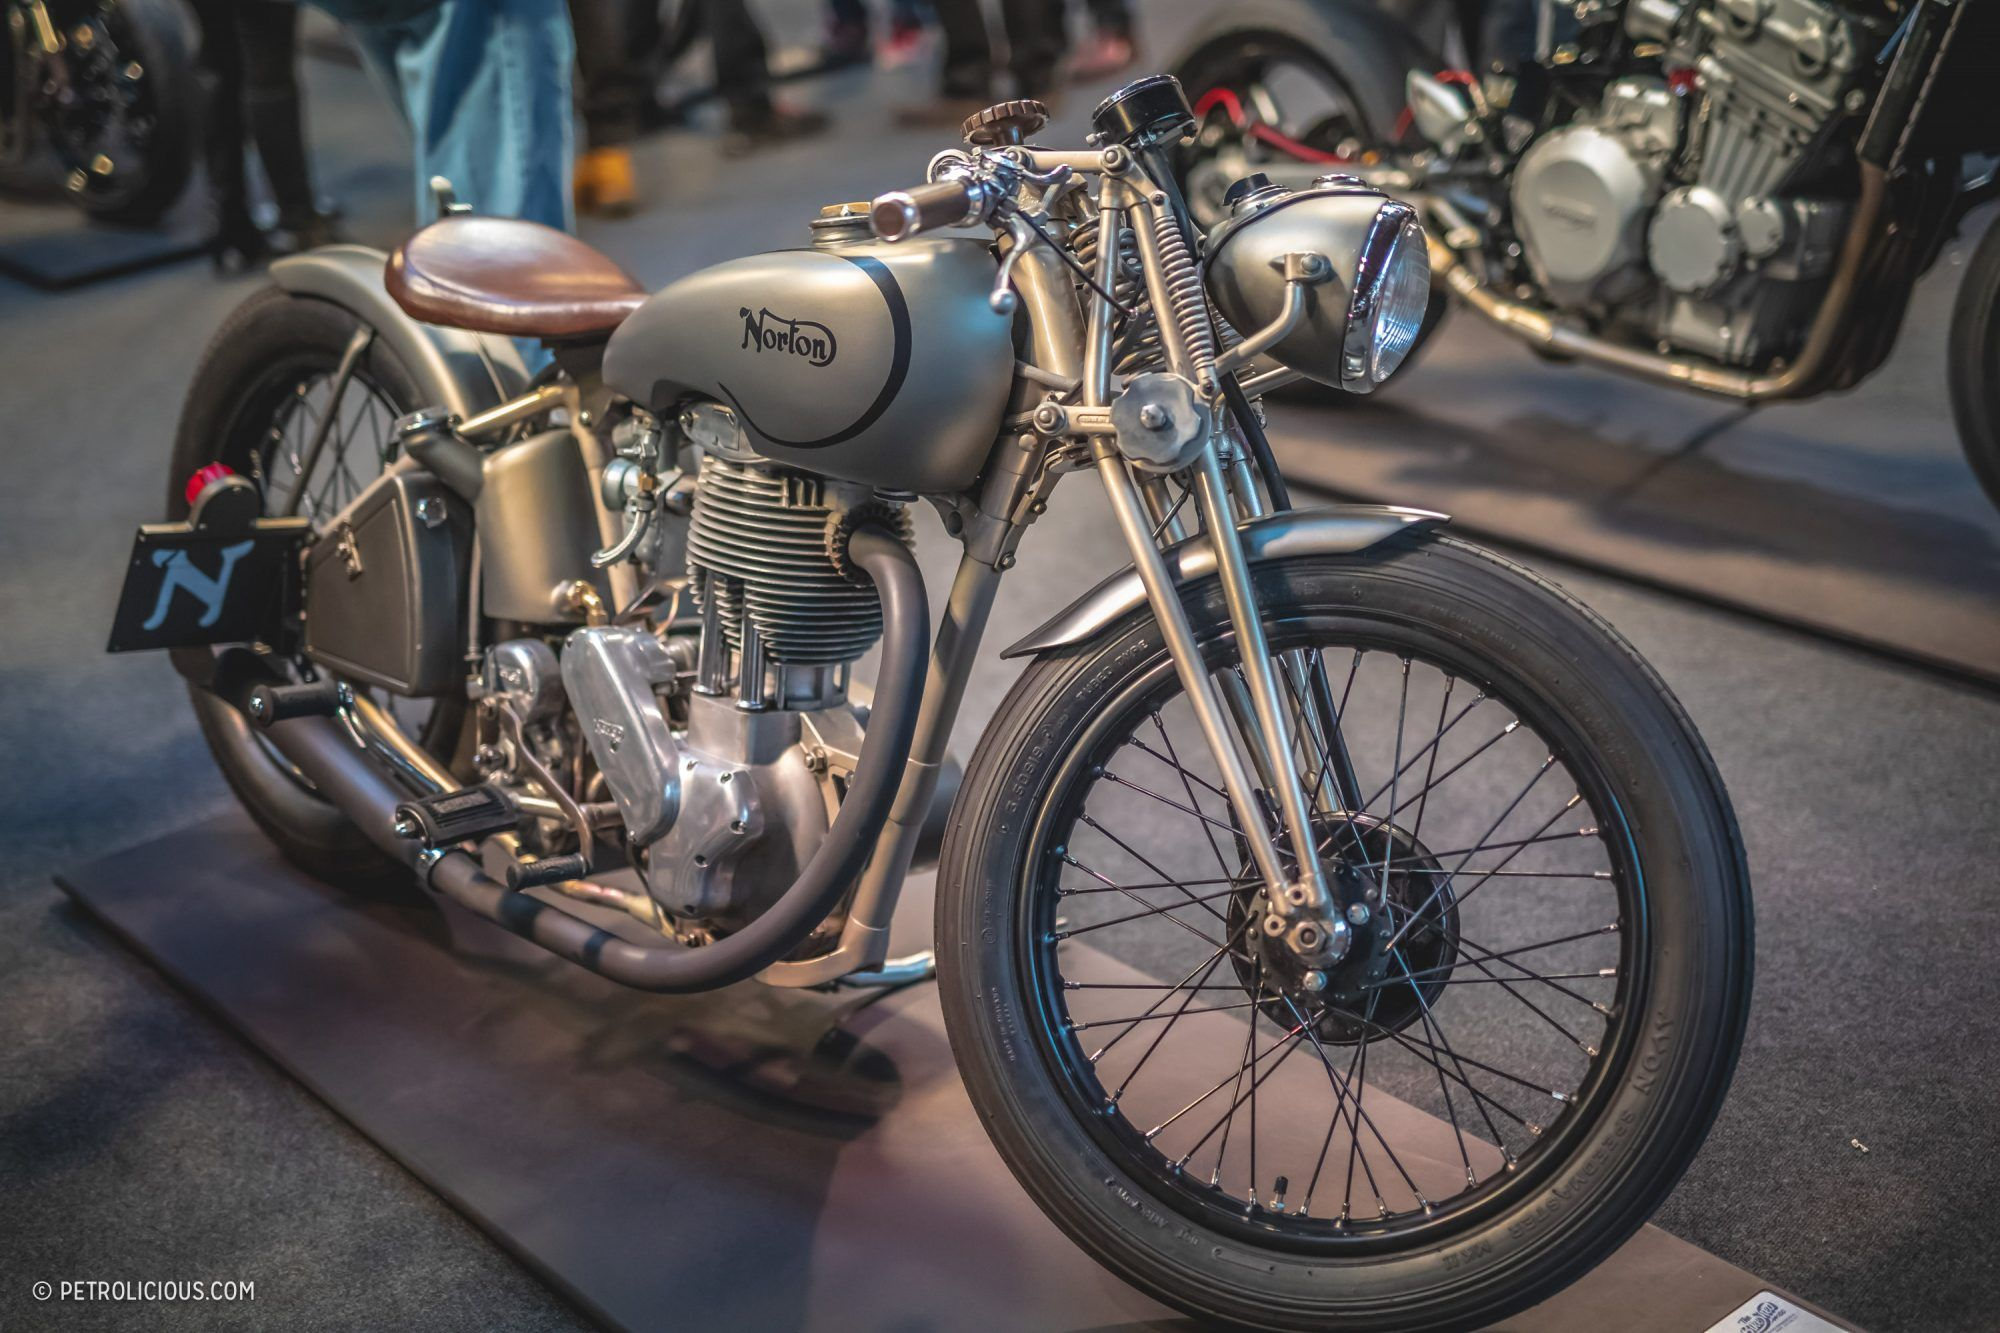 The Wildest Custom Motorcycles Meet Dockside In London For ...